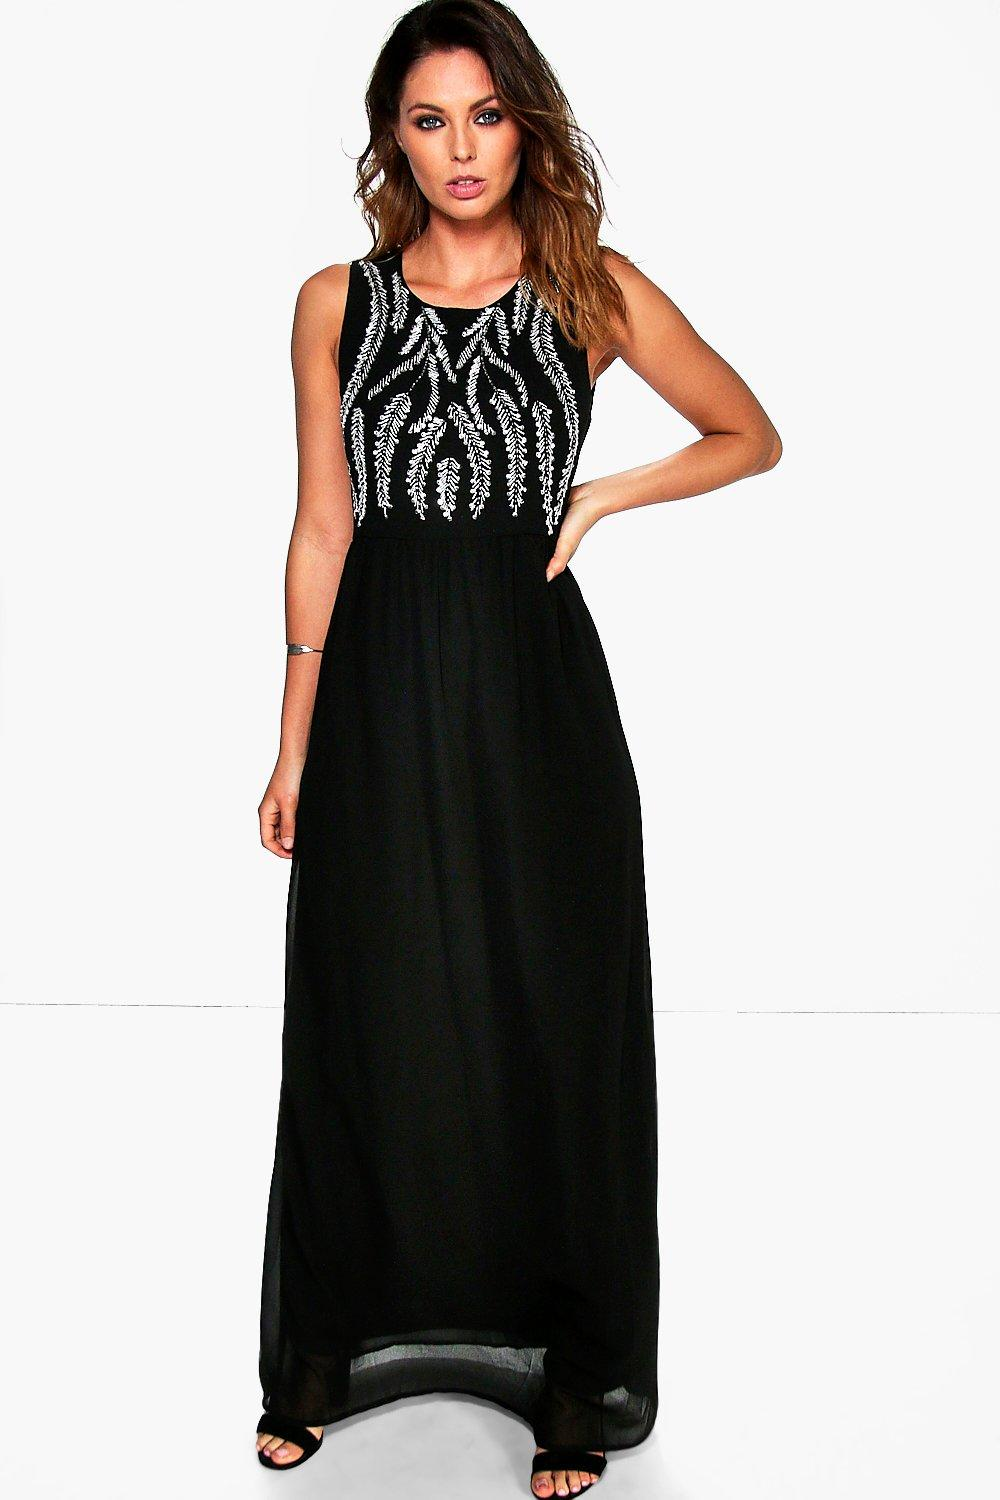 Check our latest styles of Dresses such as Embellished & Sequined at REVOLVE with free day shipping and returns, 30 day price match guarantee.